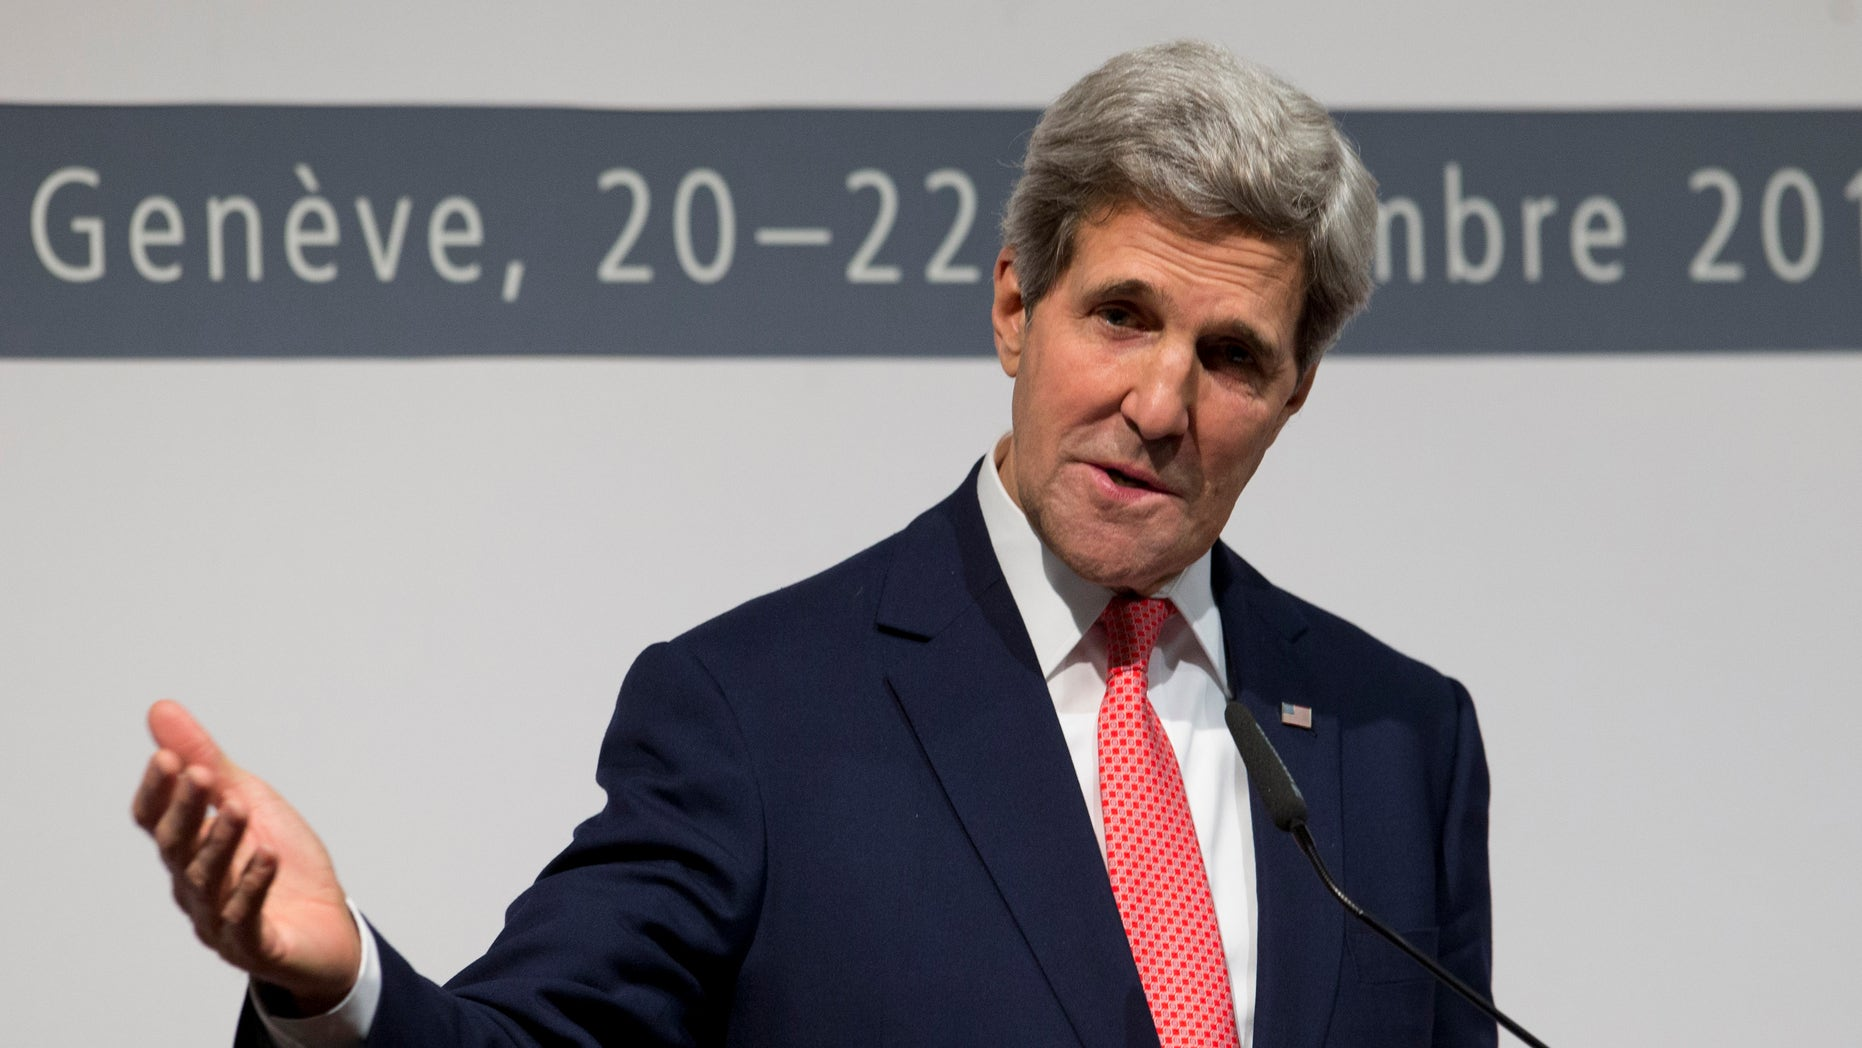 U.S. Secretary of State John Kerry gestures as he speaks to the media about the deal that has been reached between six world powers and Iran that calls on Tehran to limit its nuclear activities in return for sanctions relief,  at the International Conference Centre of Geneva, Sunday, Nov. 24, 2013, in Geneva, Switzerland,  (AP Photo/Carolyn Kaster, Pool)